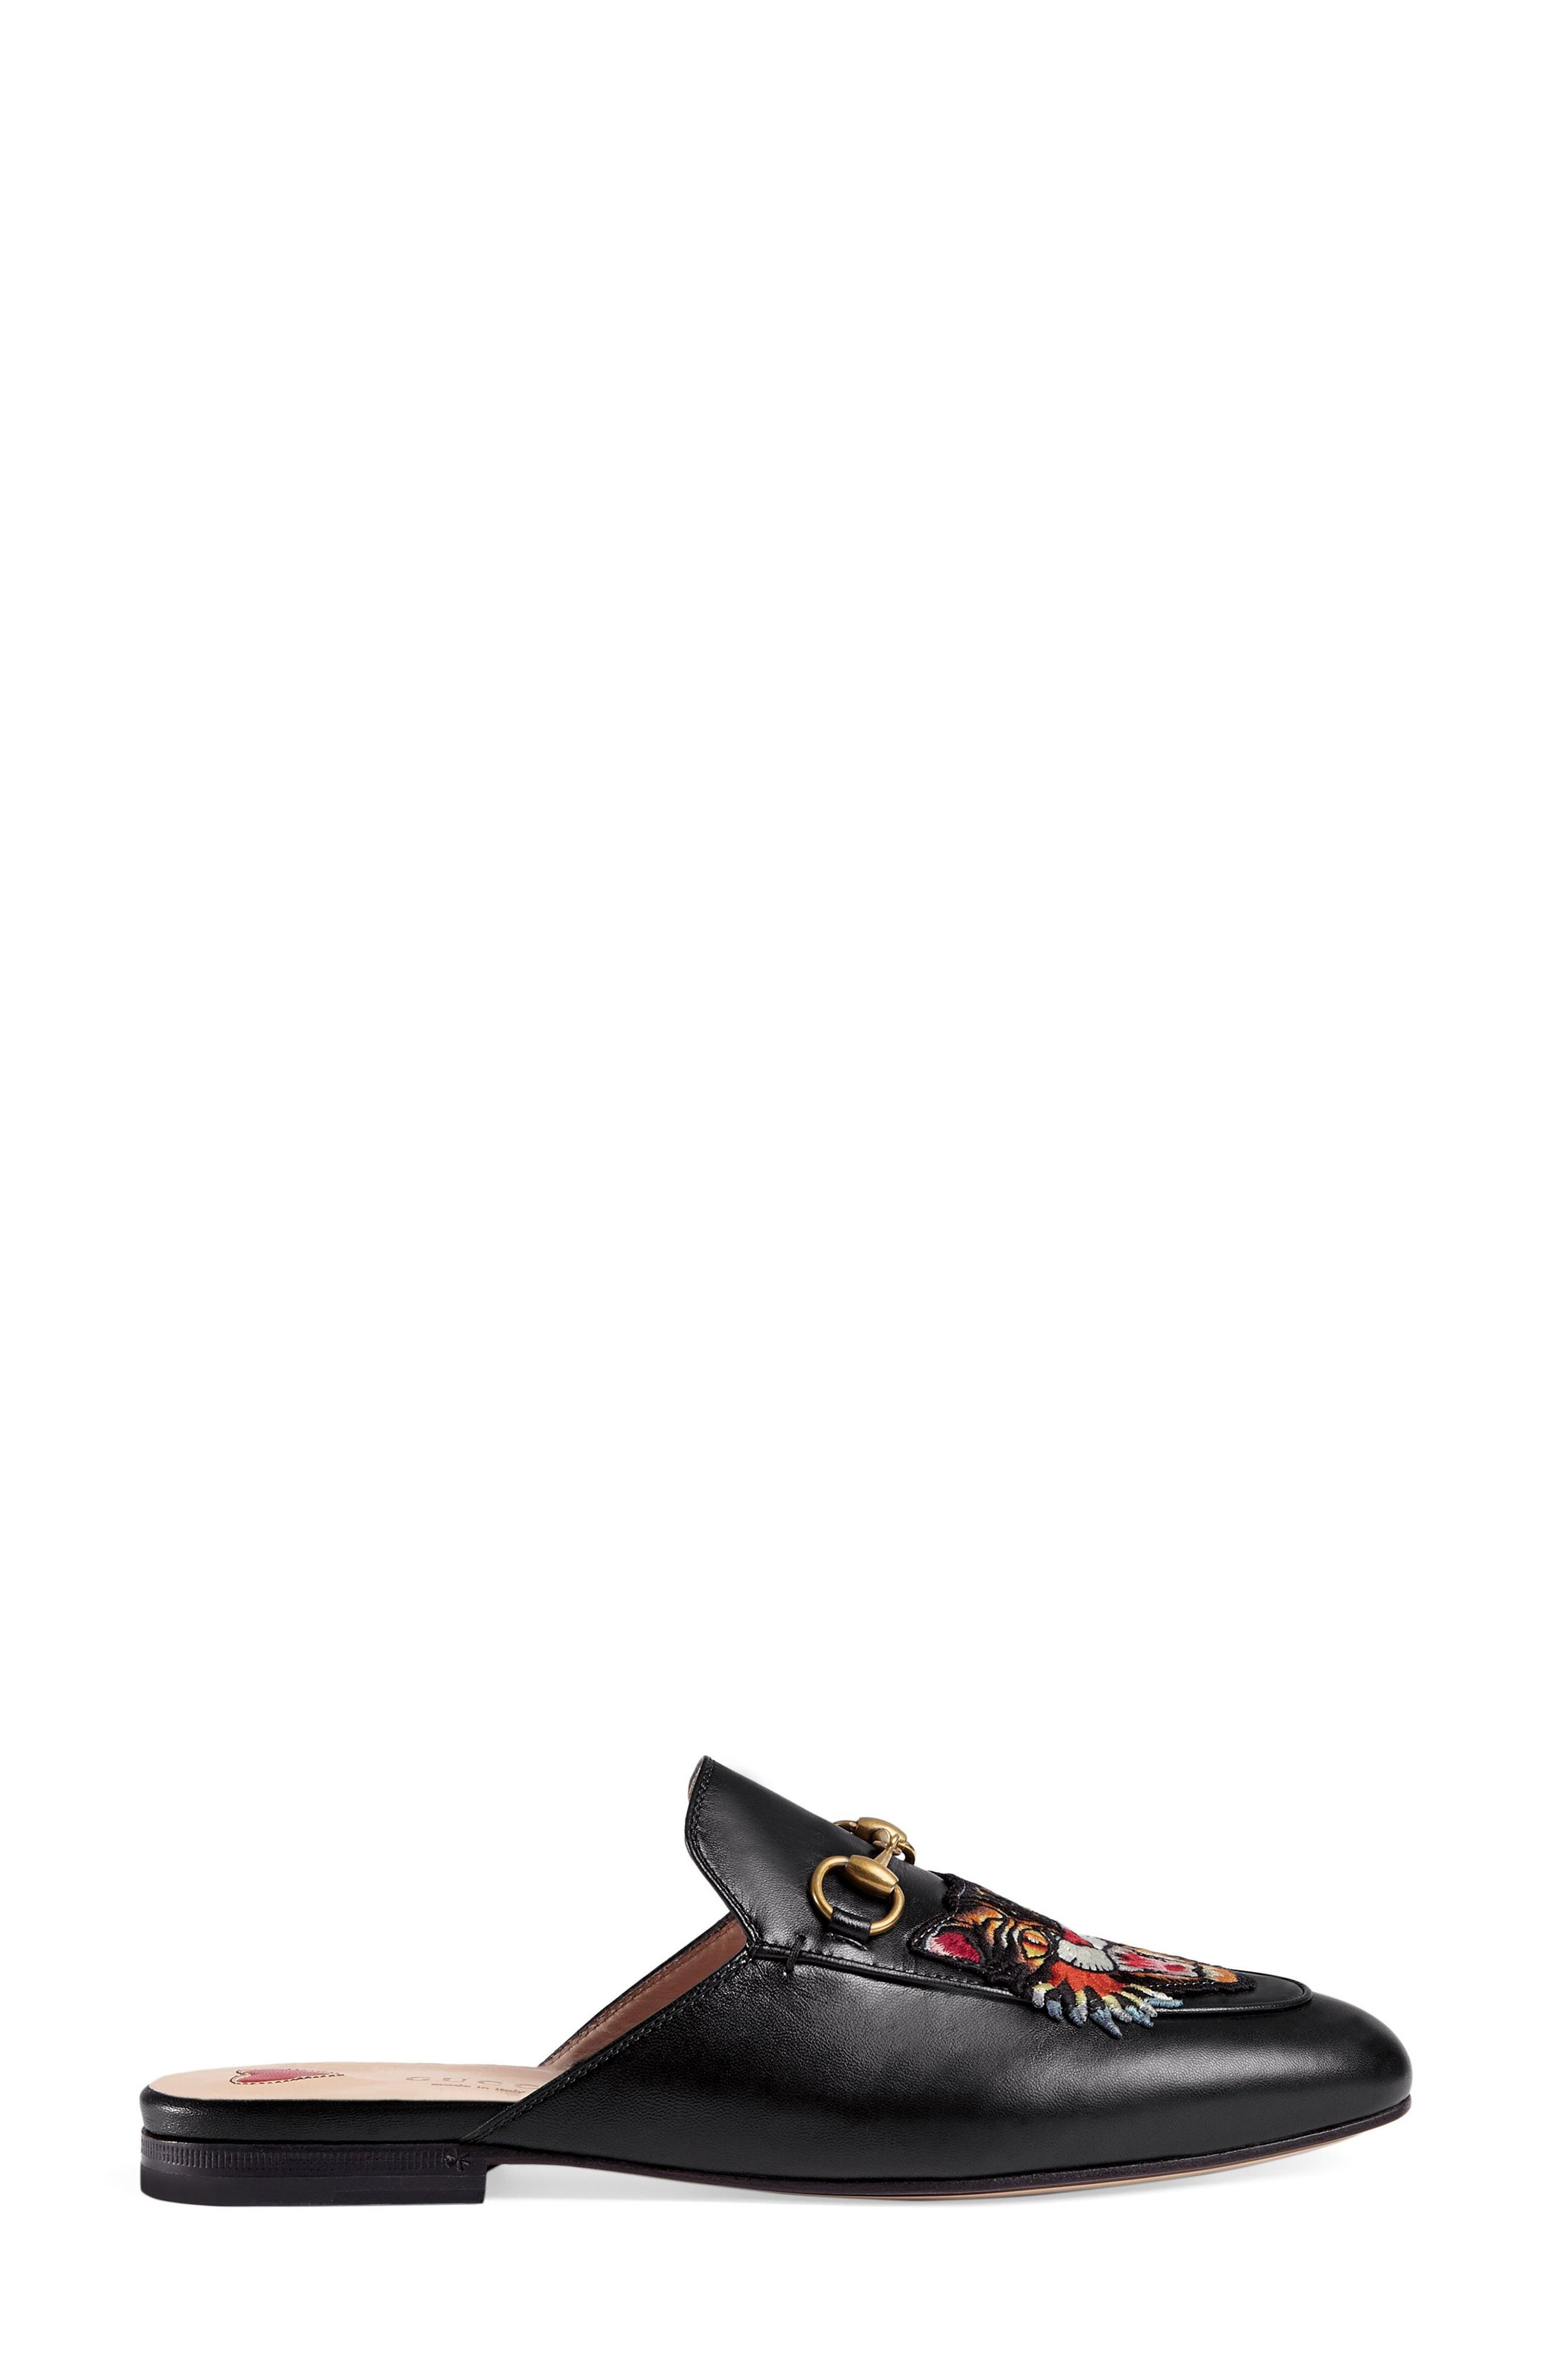 GUCCI Princetown Angry Cat Mule Loafer